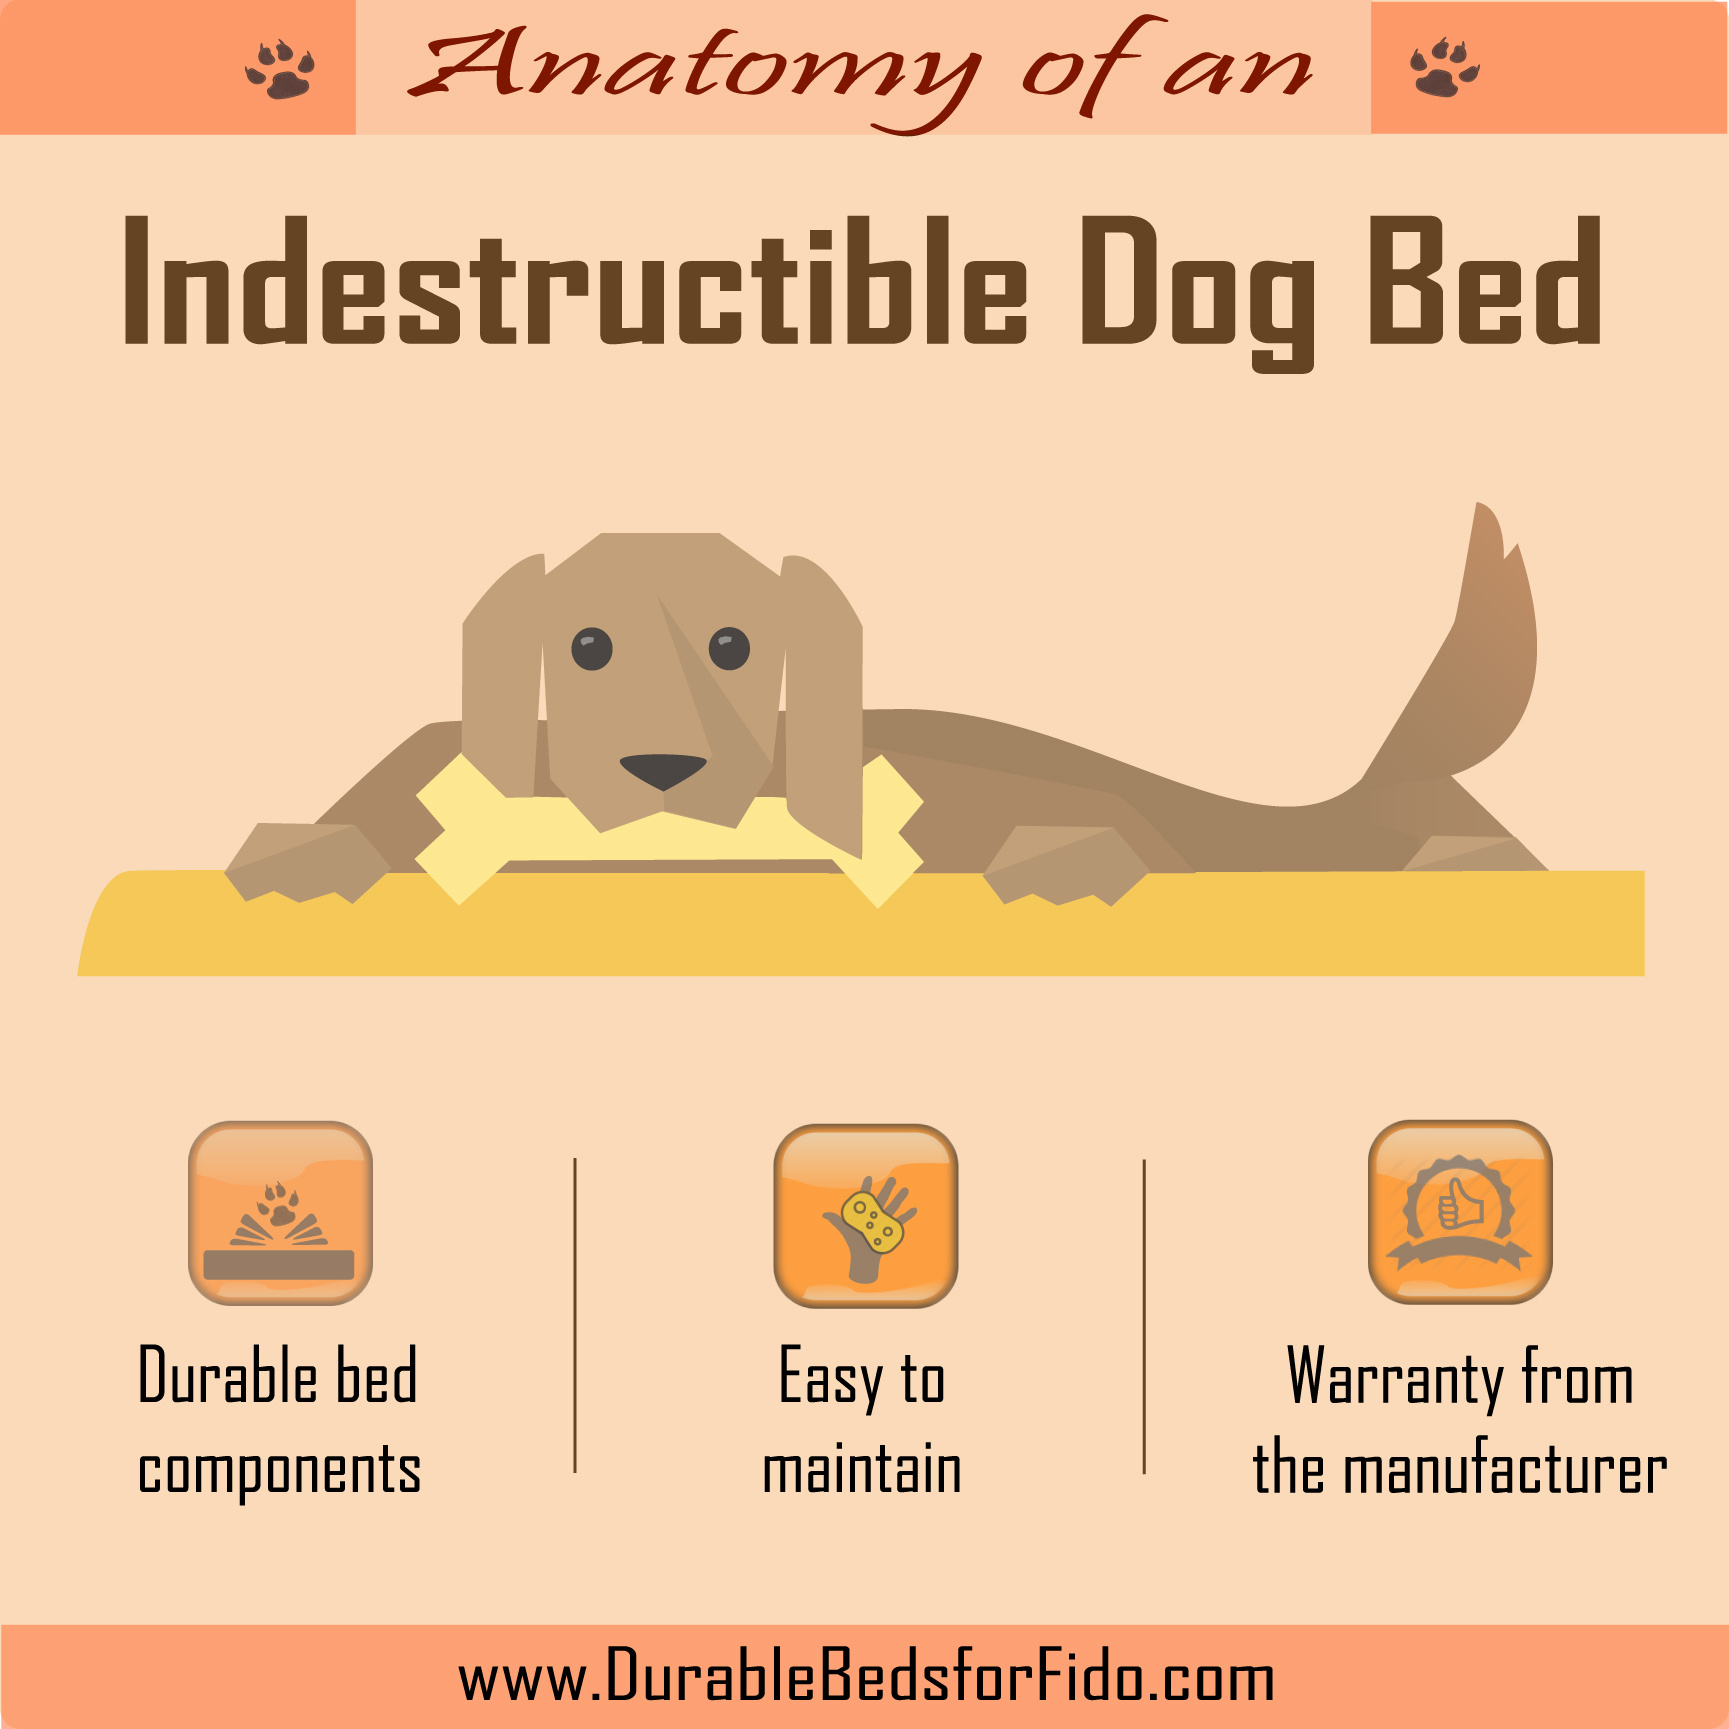 beds designer dog supplies bed indestructible memory top pet brindle foam best proof in reviews for waterproof chewers chew